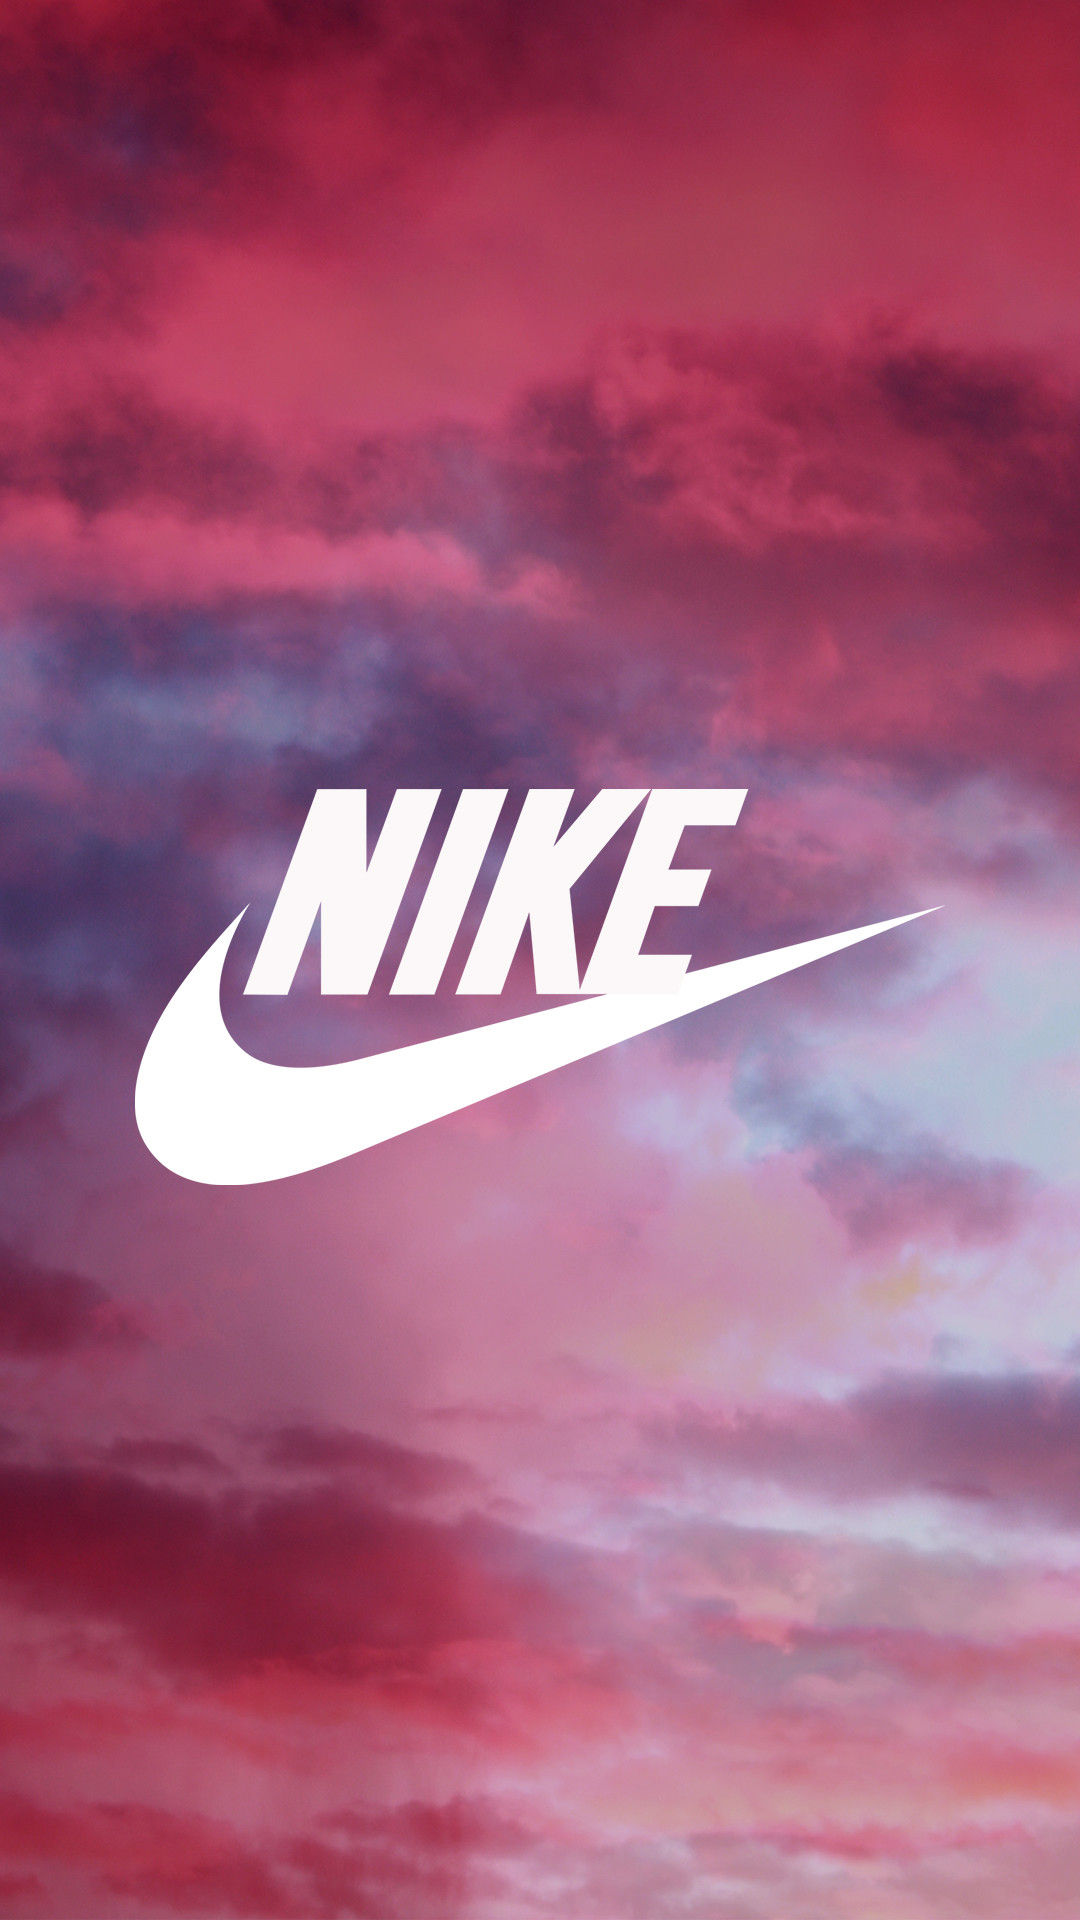 Iphone Wallpaper Trippy Dope Nike Wallpaper 79 Images